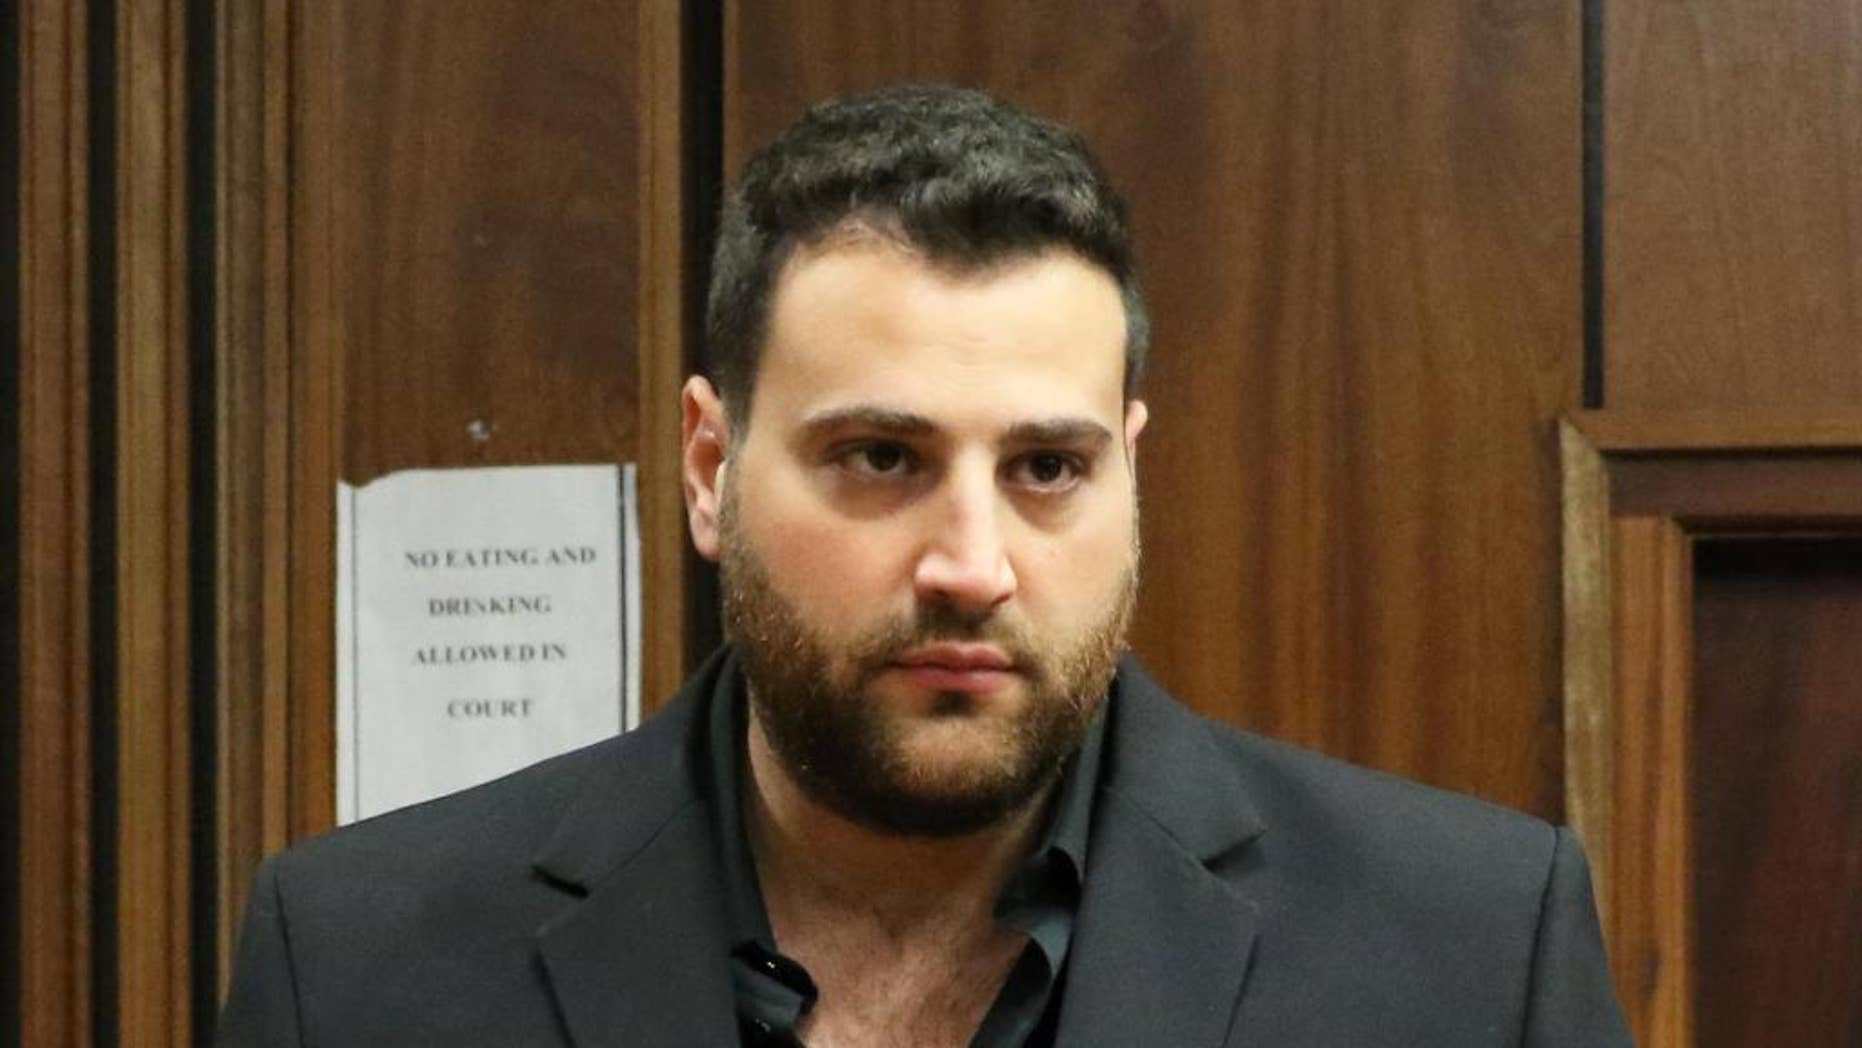 Christopher Panayiotou appears at a court to face a murder charge in Port Elizabeth, South Africa, Monday, May 4, 2015. Panayiotou has been charged with his wife's murder, days after local media reported that the heartfelt eulogy he delivered at her funeral was plagiarized, police said on Monday. (AP Photo/Judy de Vega)